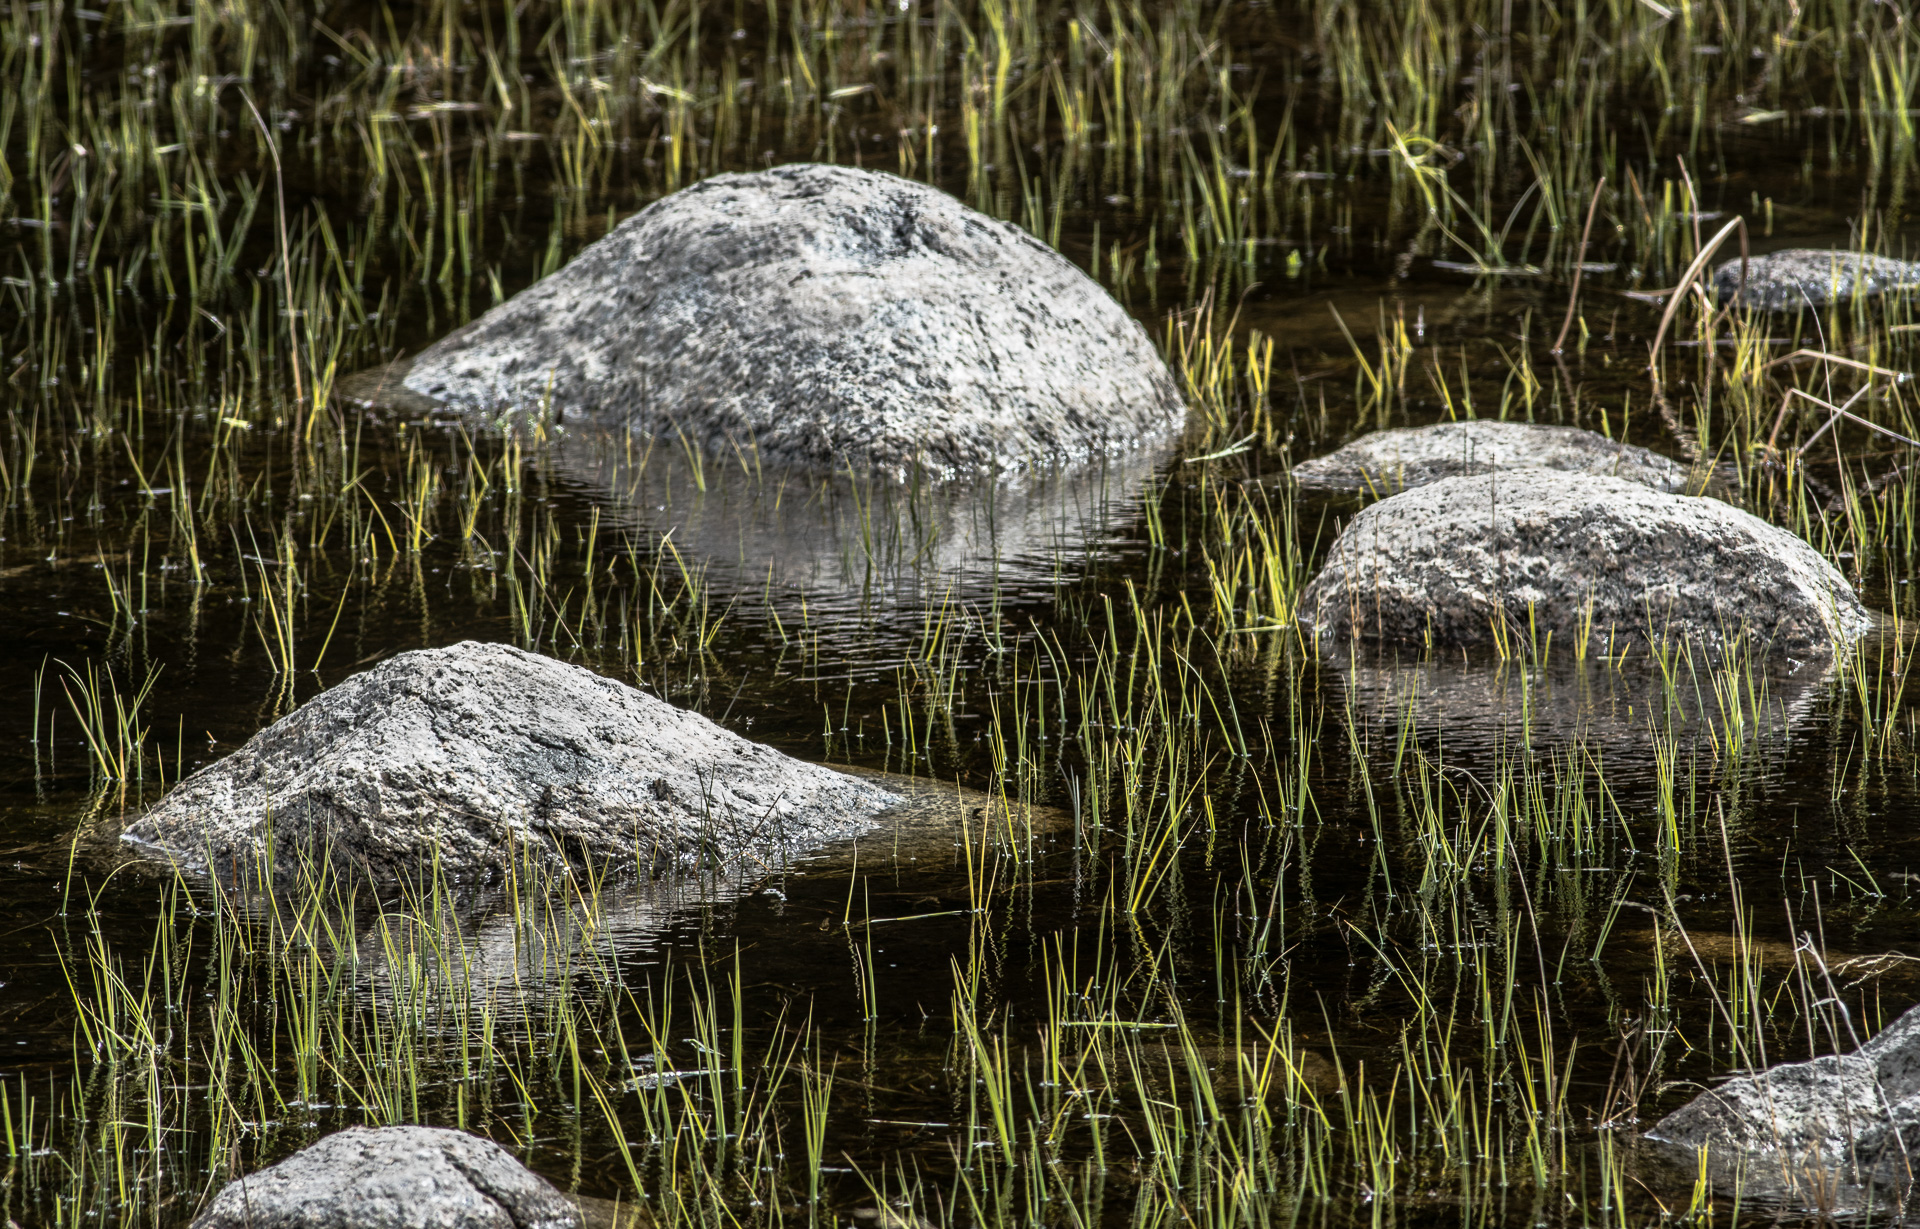 Rocks and sedges pattern Yellowstone National Park WY -05079